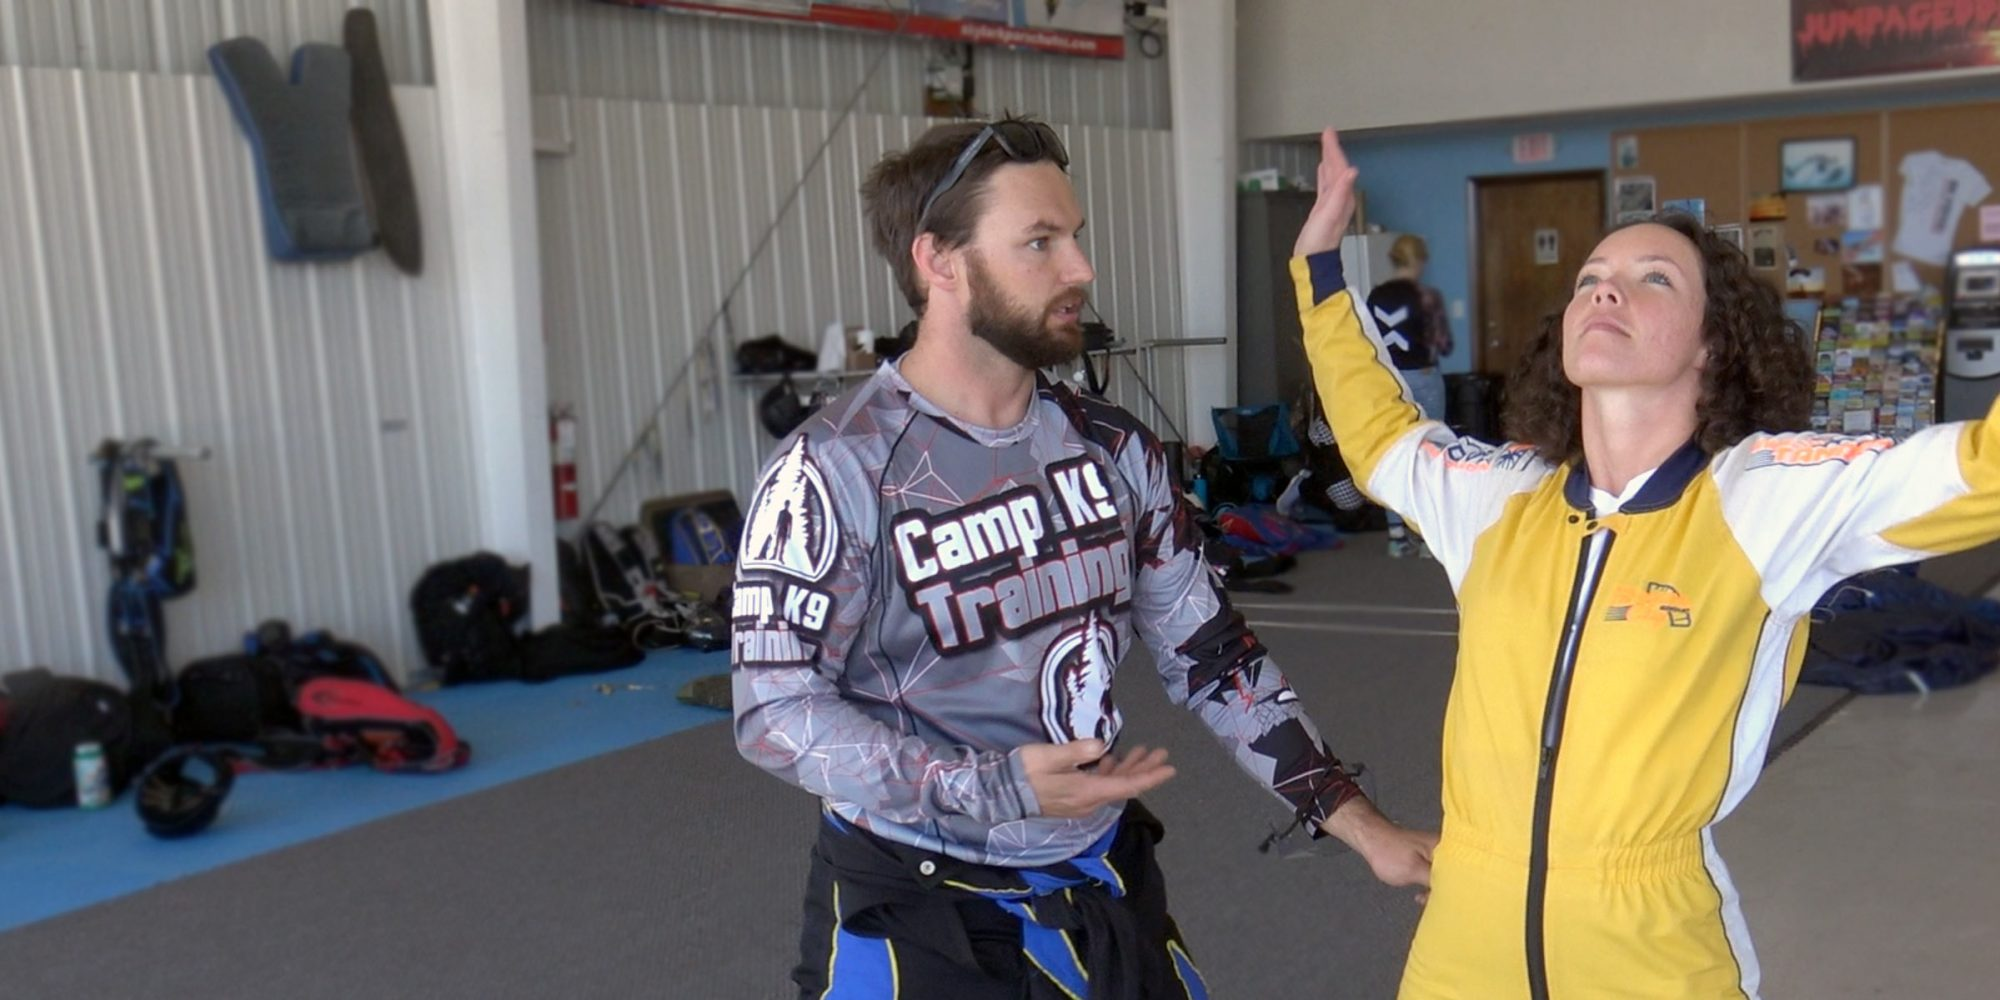 Curly haired female skydiving student in yellow jump suit practices her arch body position as skydiving instructor provides instruction before skydiving in Wilmington, NC